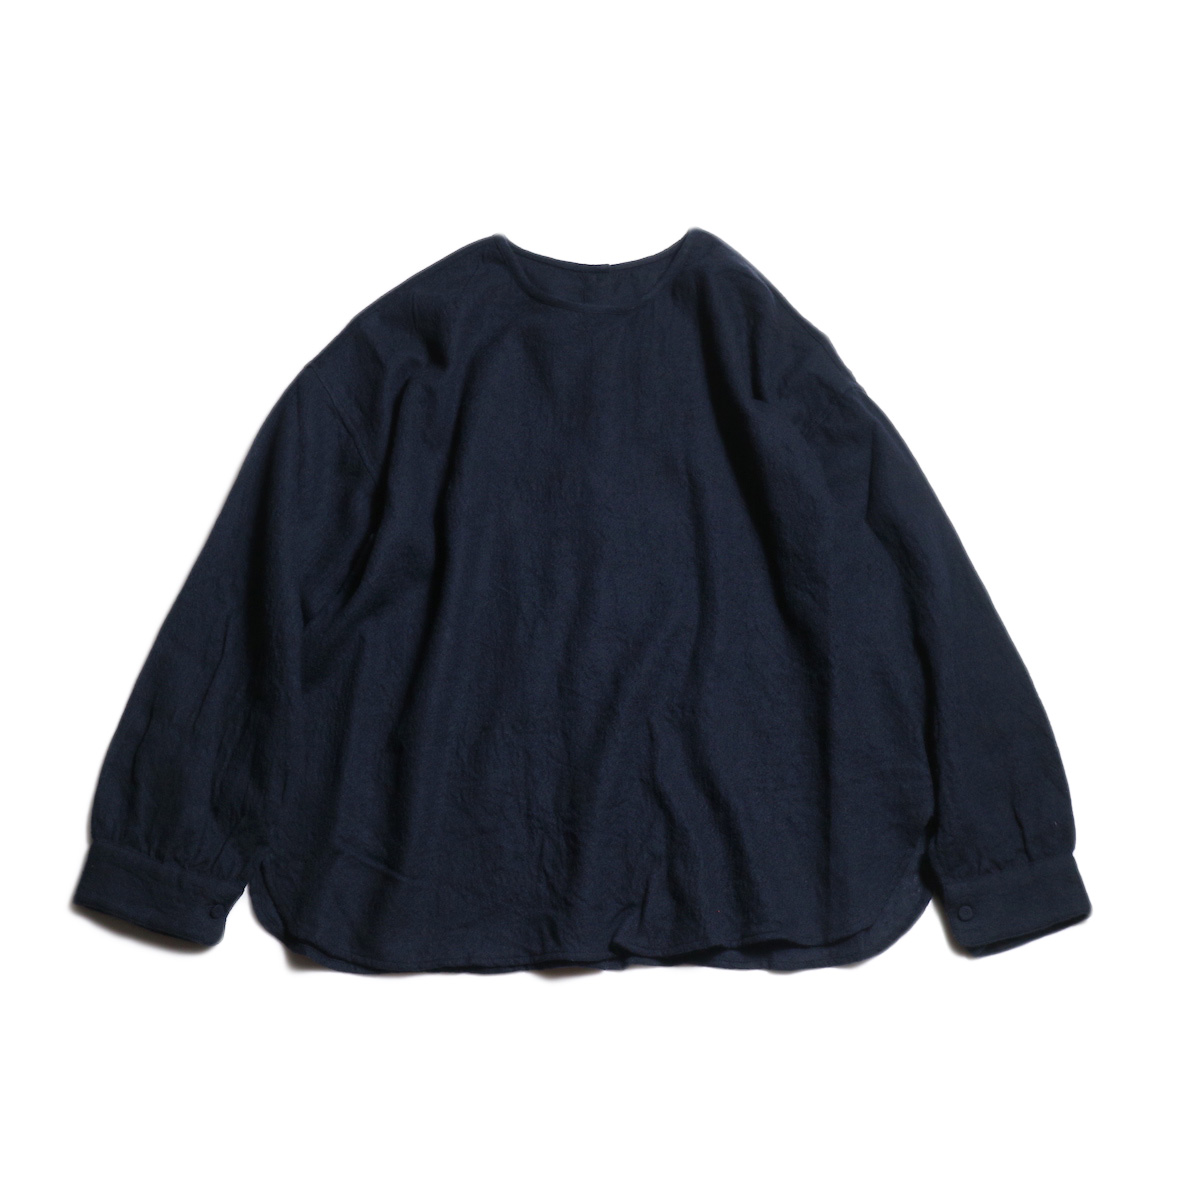 maison de soil / BACK OPENING CREW-NECK SHIRT (Black)